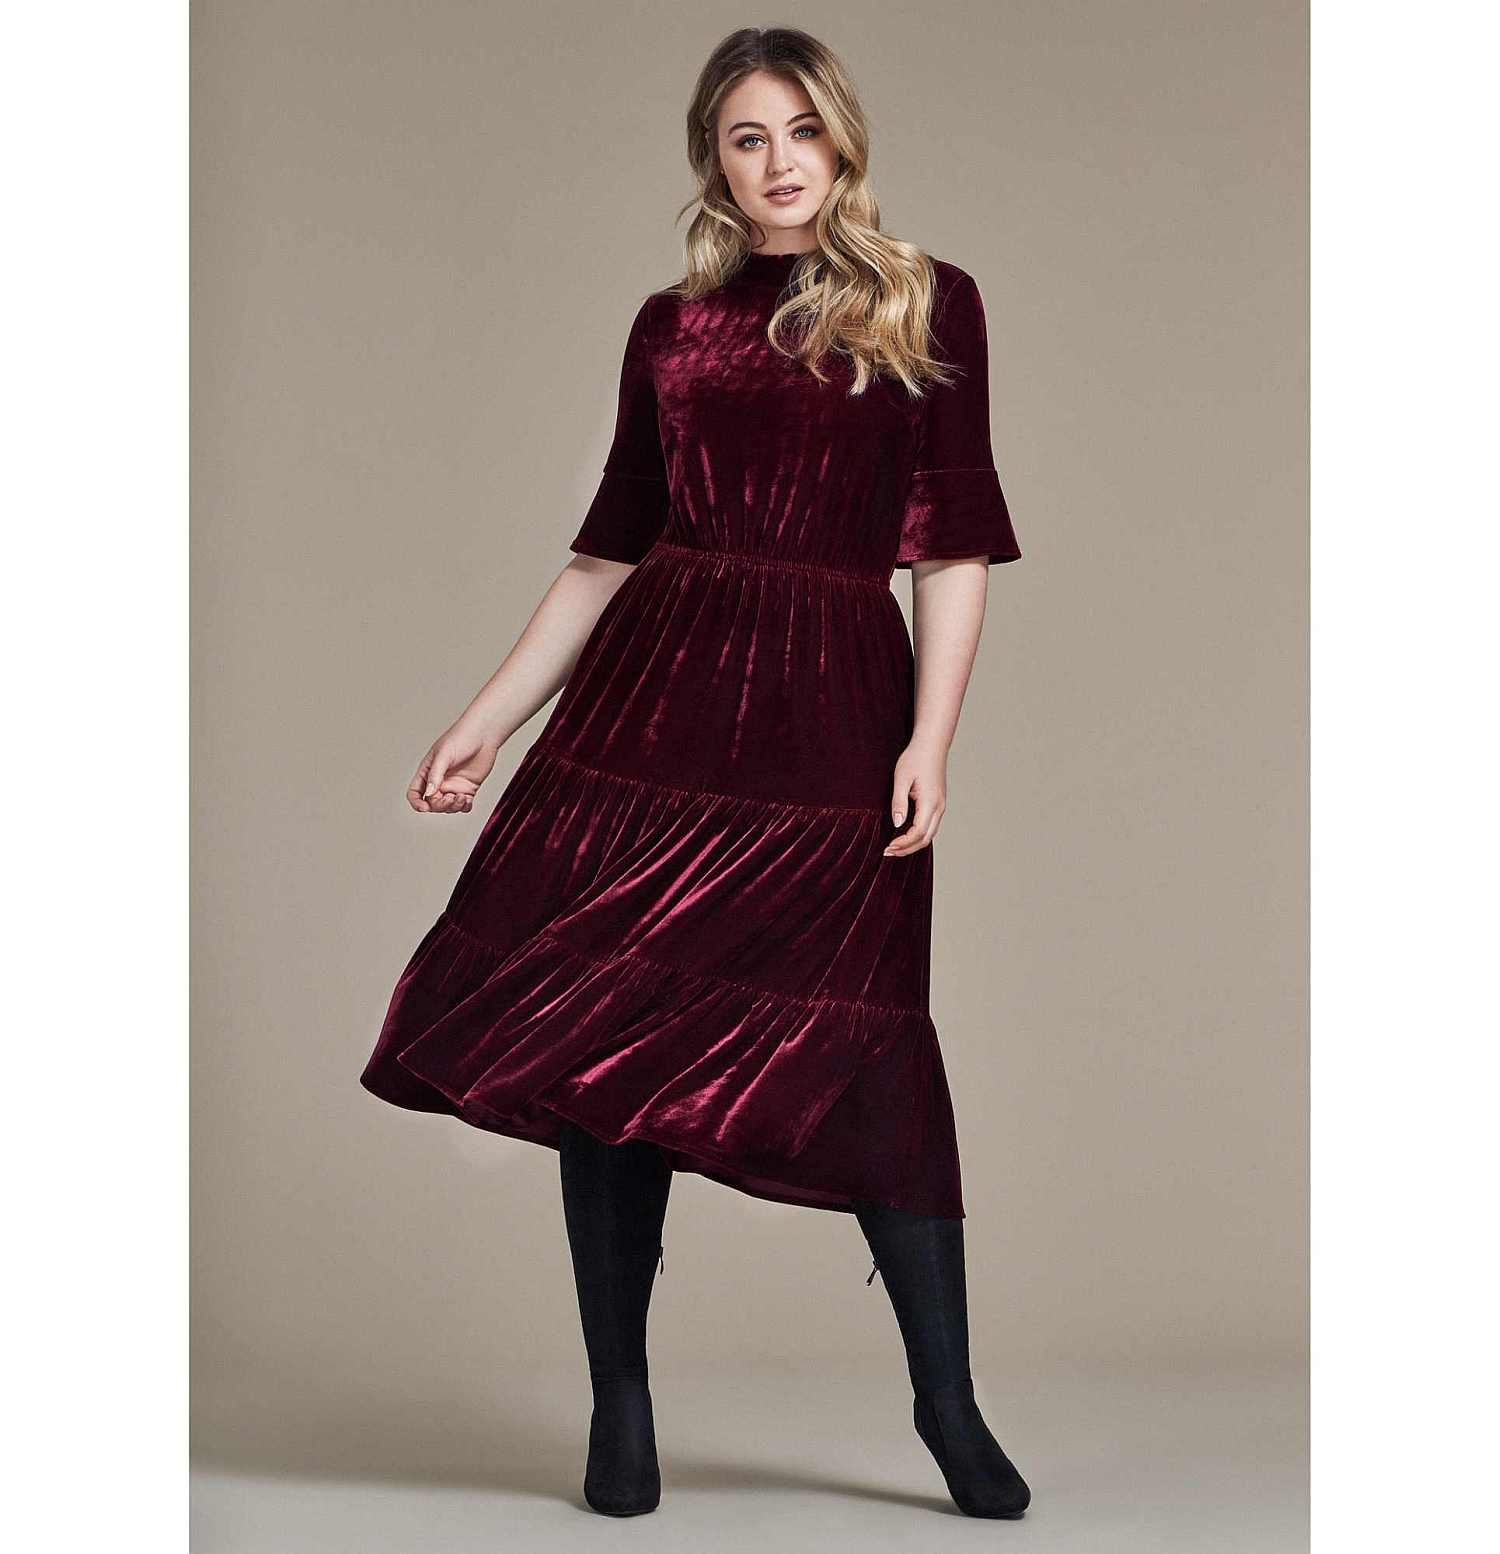 Model wearing SimplyBe Tiered Velour Dress and; Sole Diva Charlotte Boots